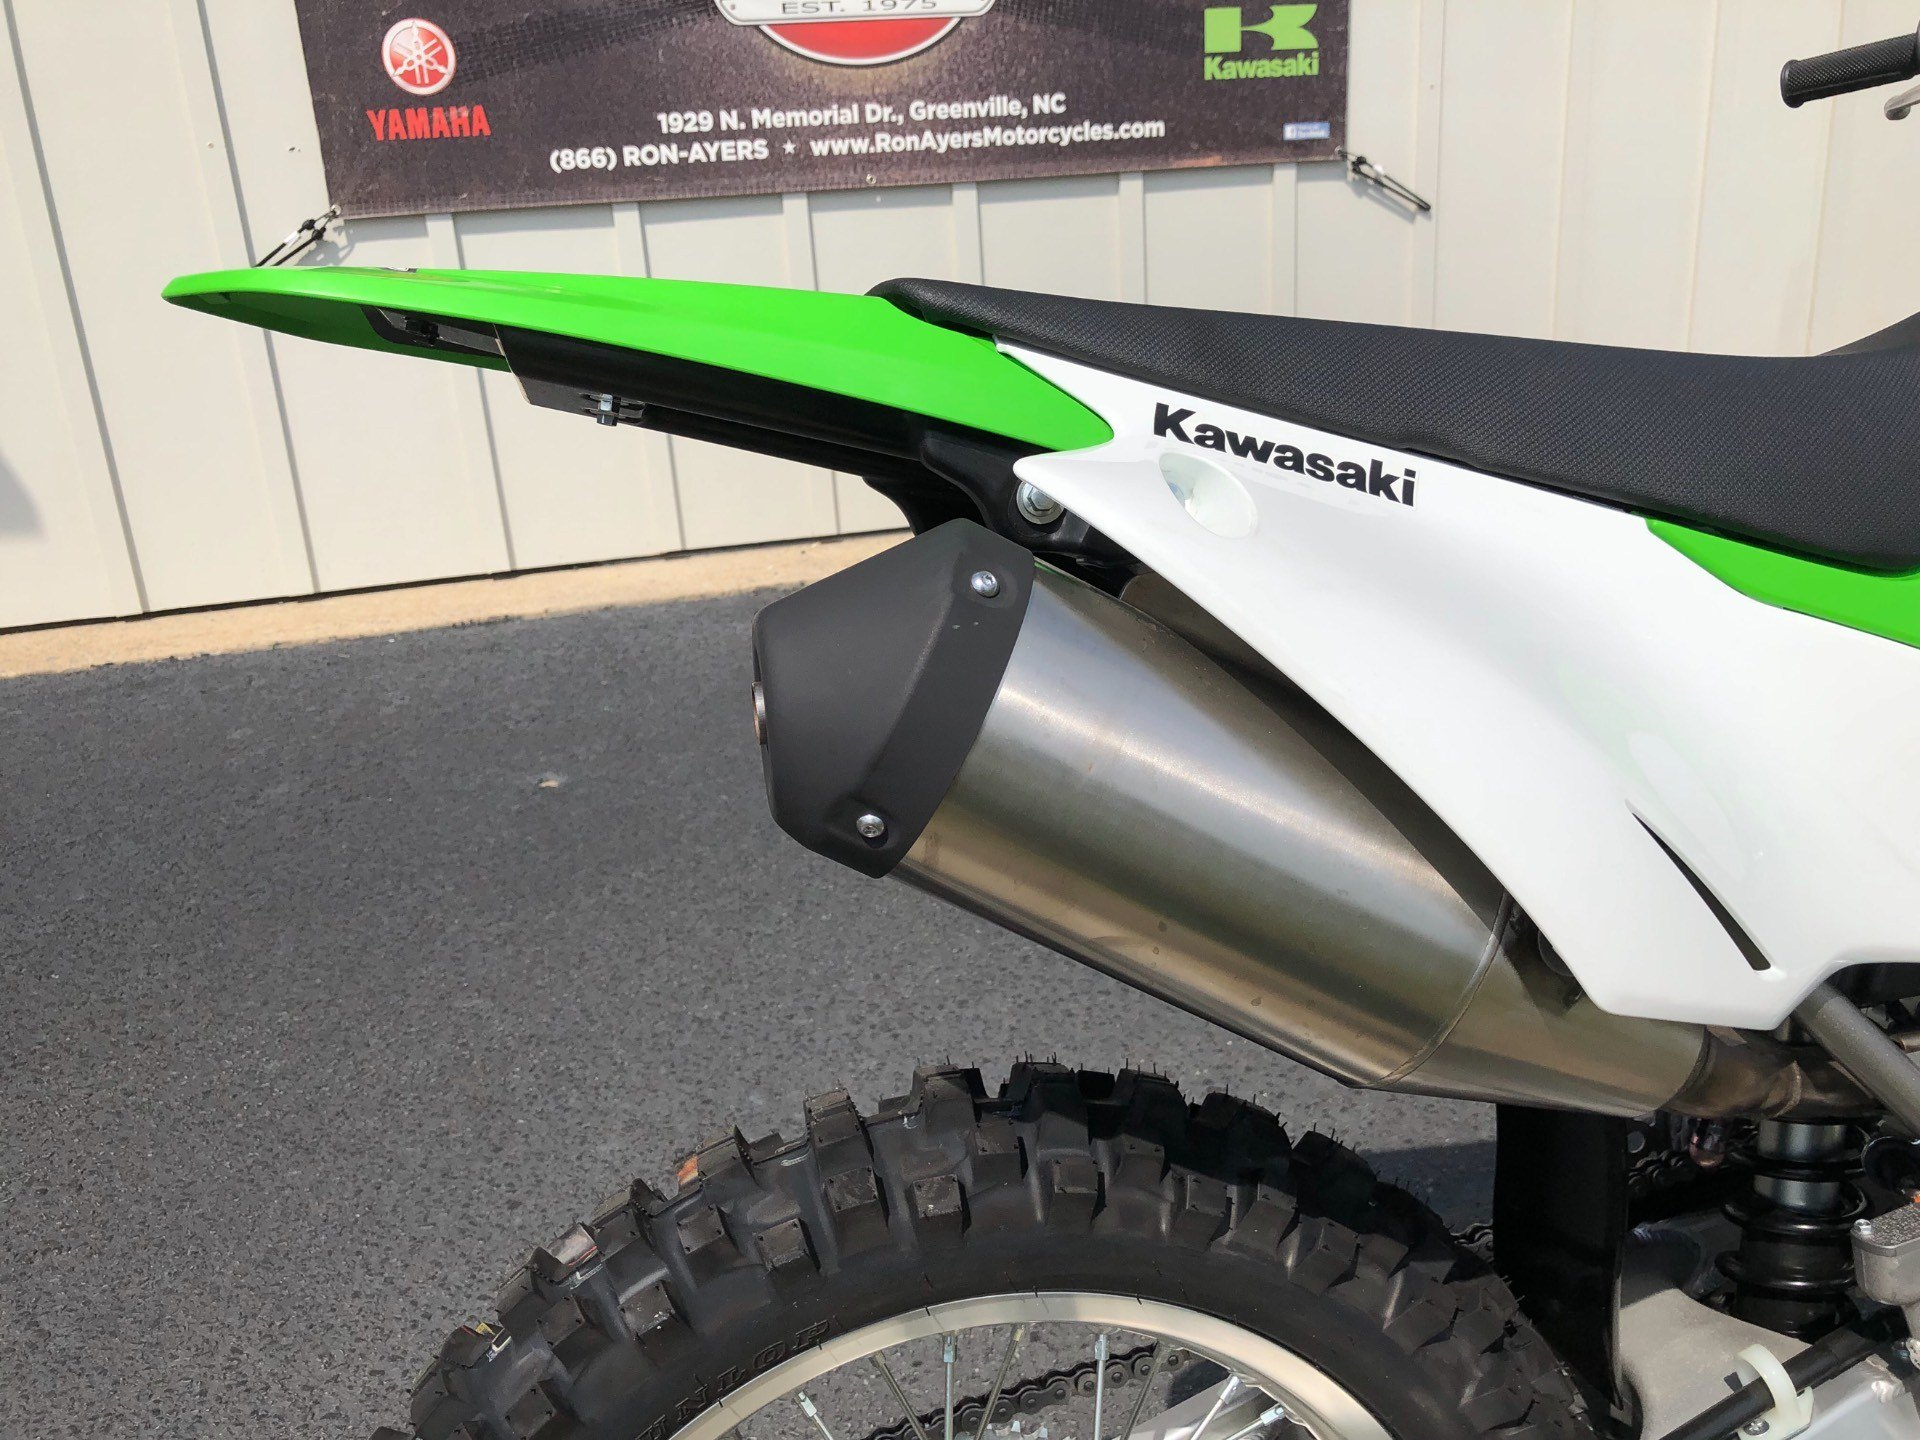 2020 Kawasaki KLX 230R in Greenville, North Carolina - Photo 17